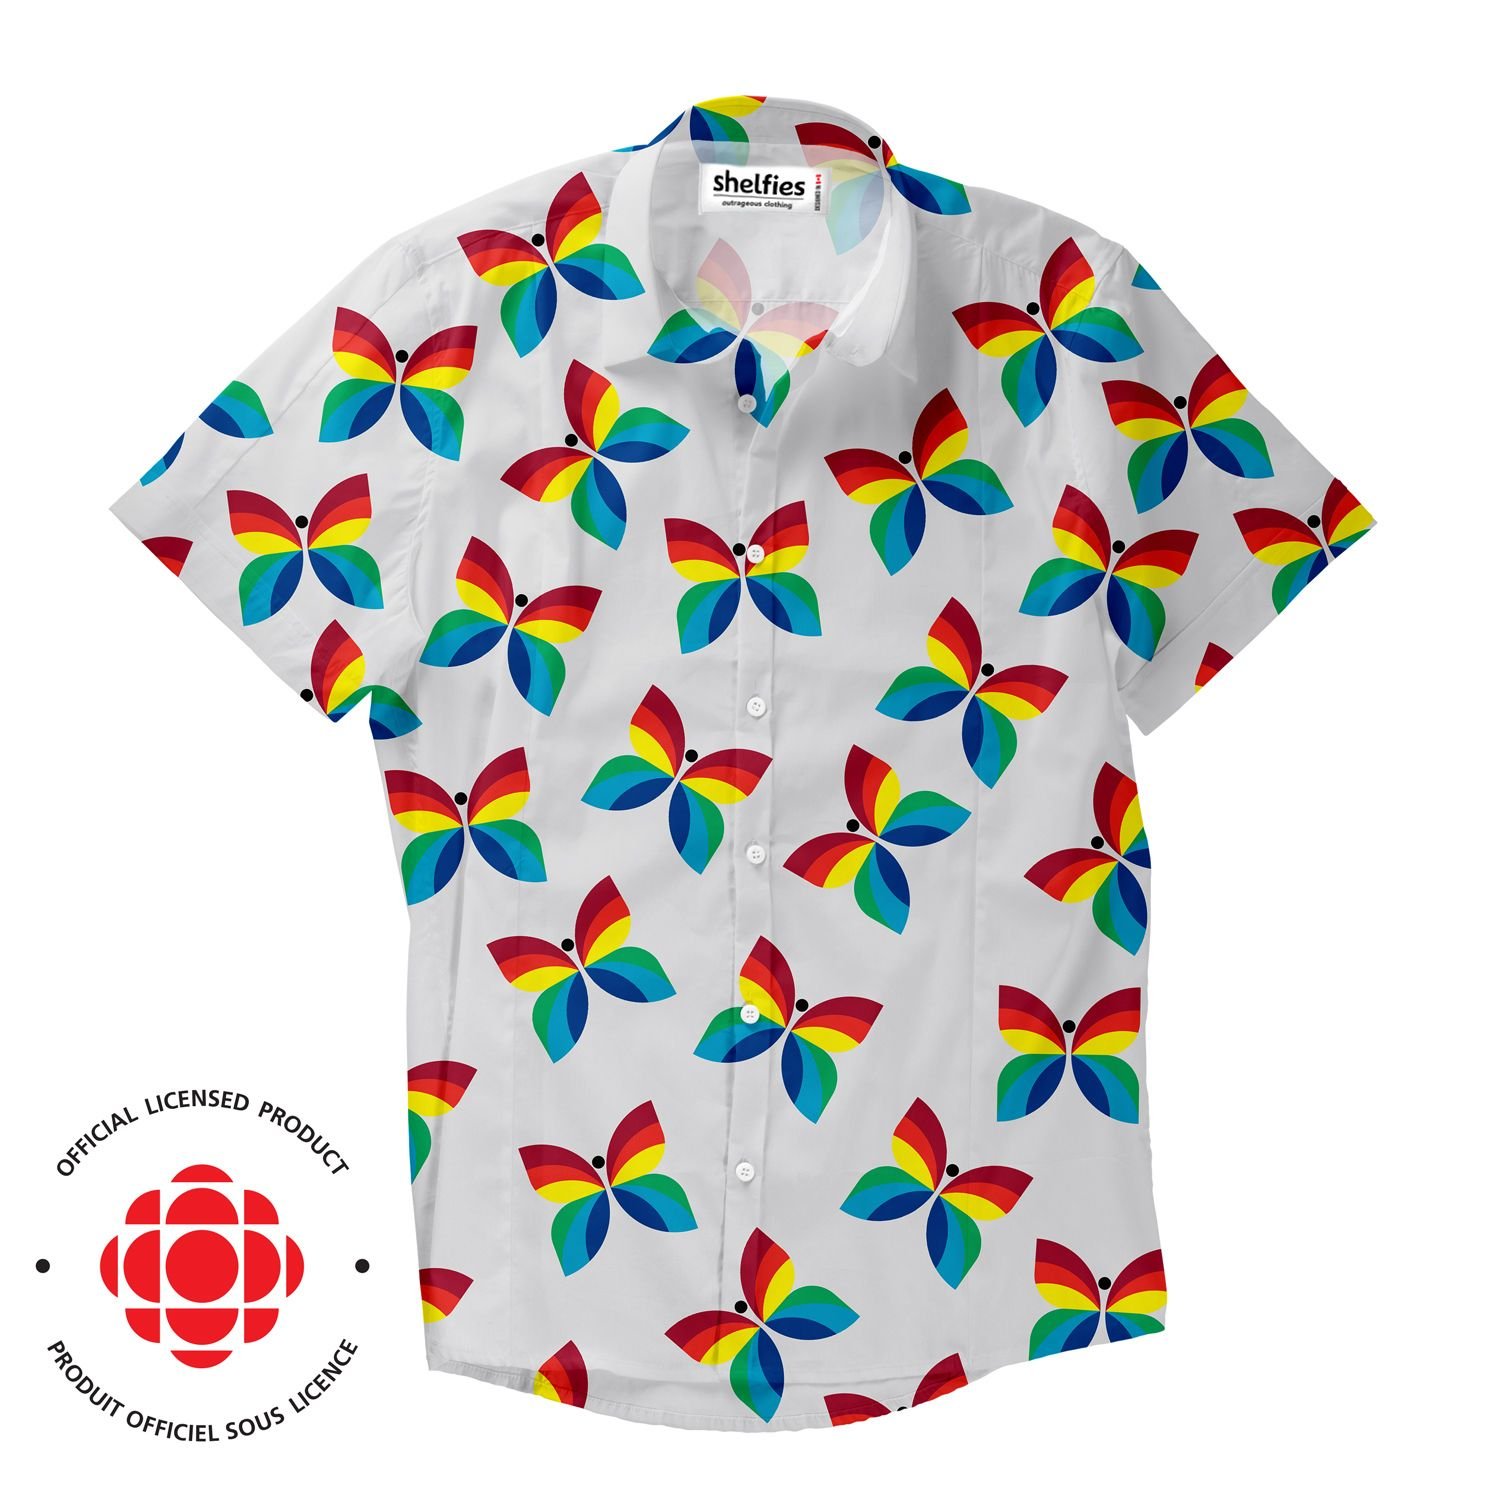 """f36a8ec6c """"Created in 1966 by Hubert Tison, the CBC/Radio-Canada rainbow butterfly  logo was unveiled with the introduction of colour TV"""""""